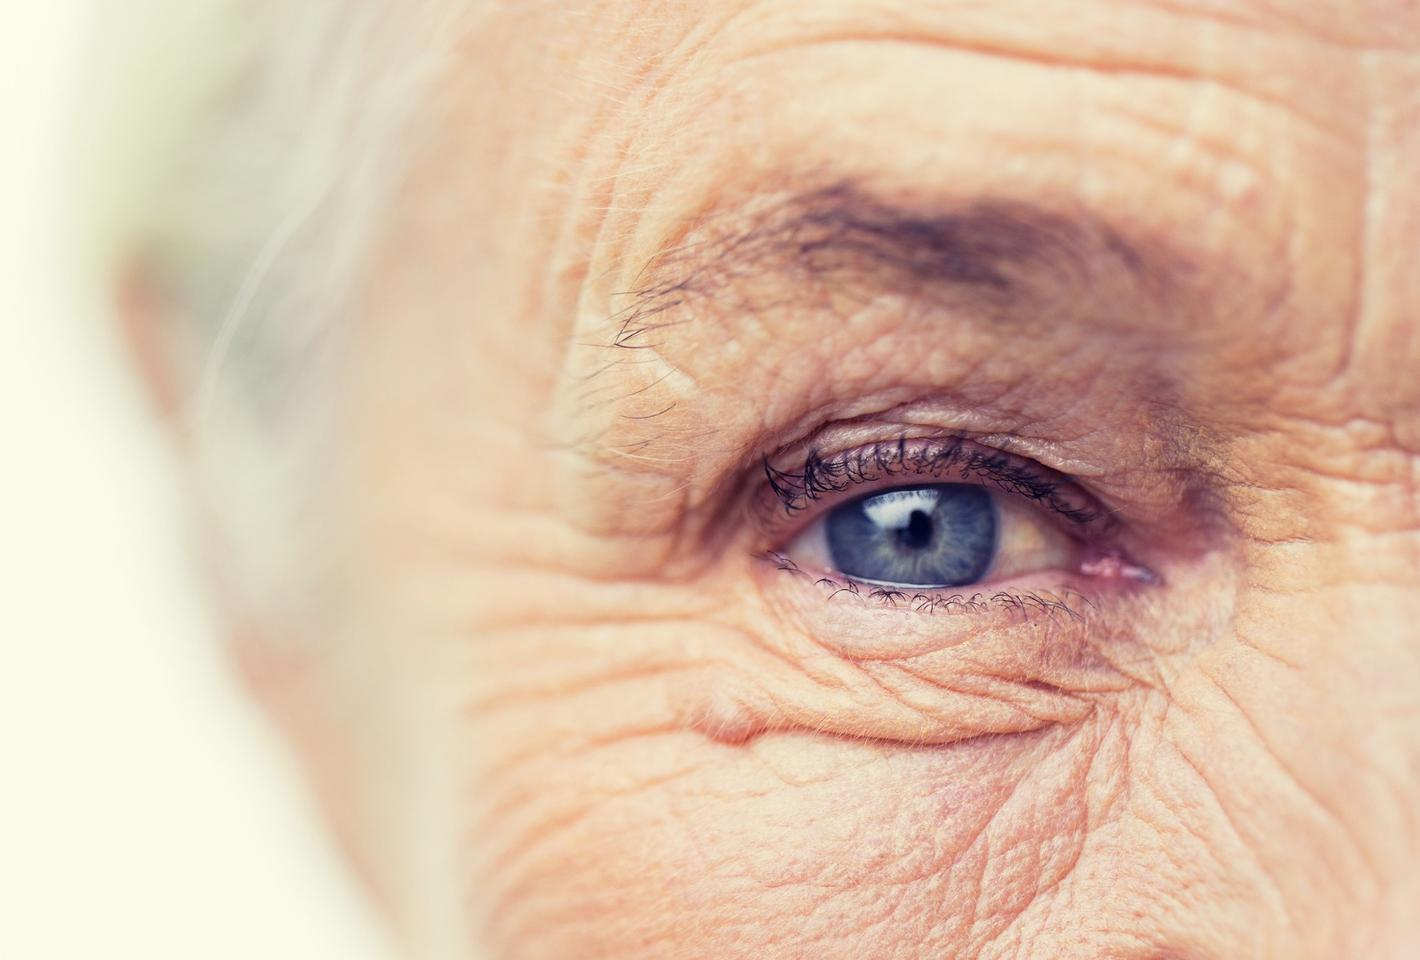 Age-related macular degeneration, diabetic retinopathy and glaucomawere all associated with a higher risk of developing Alzheimer's disease in a new study